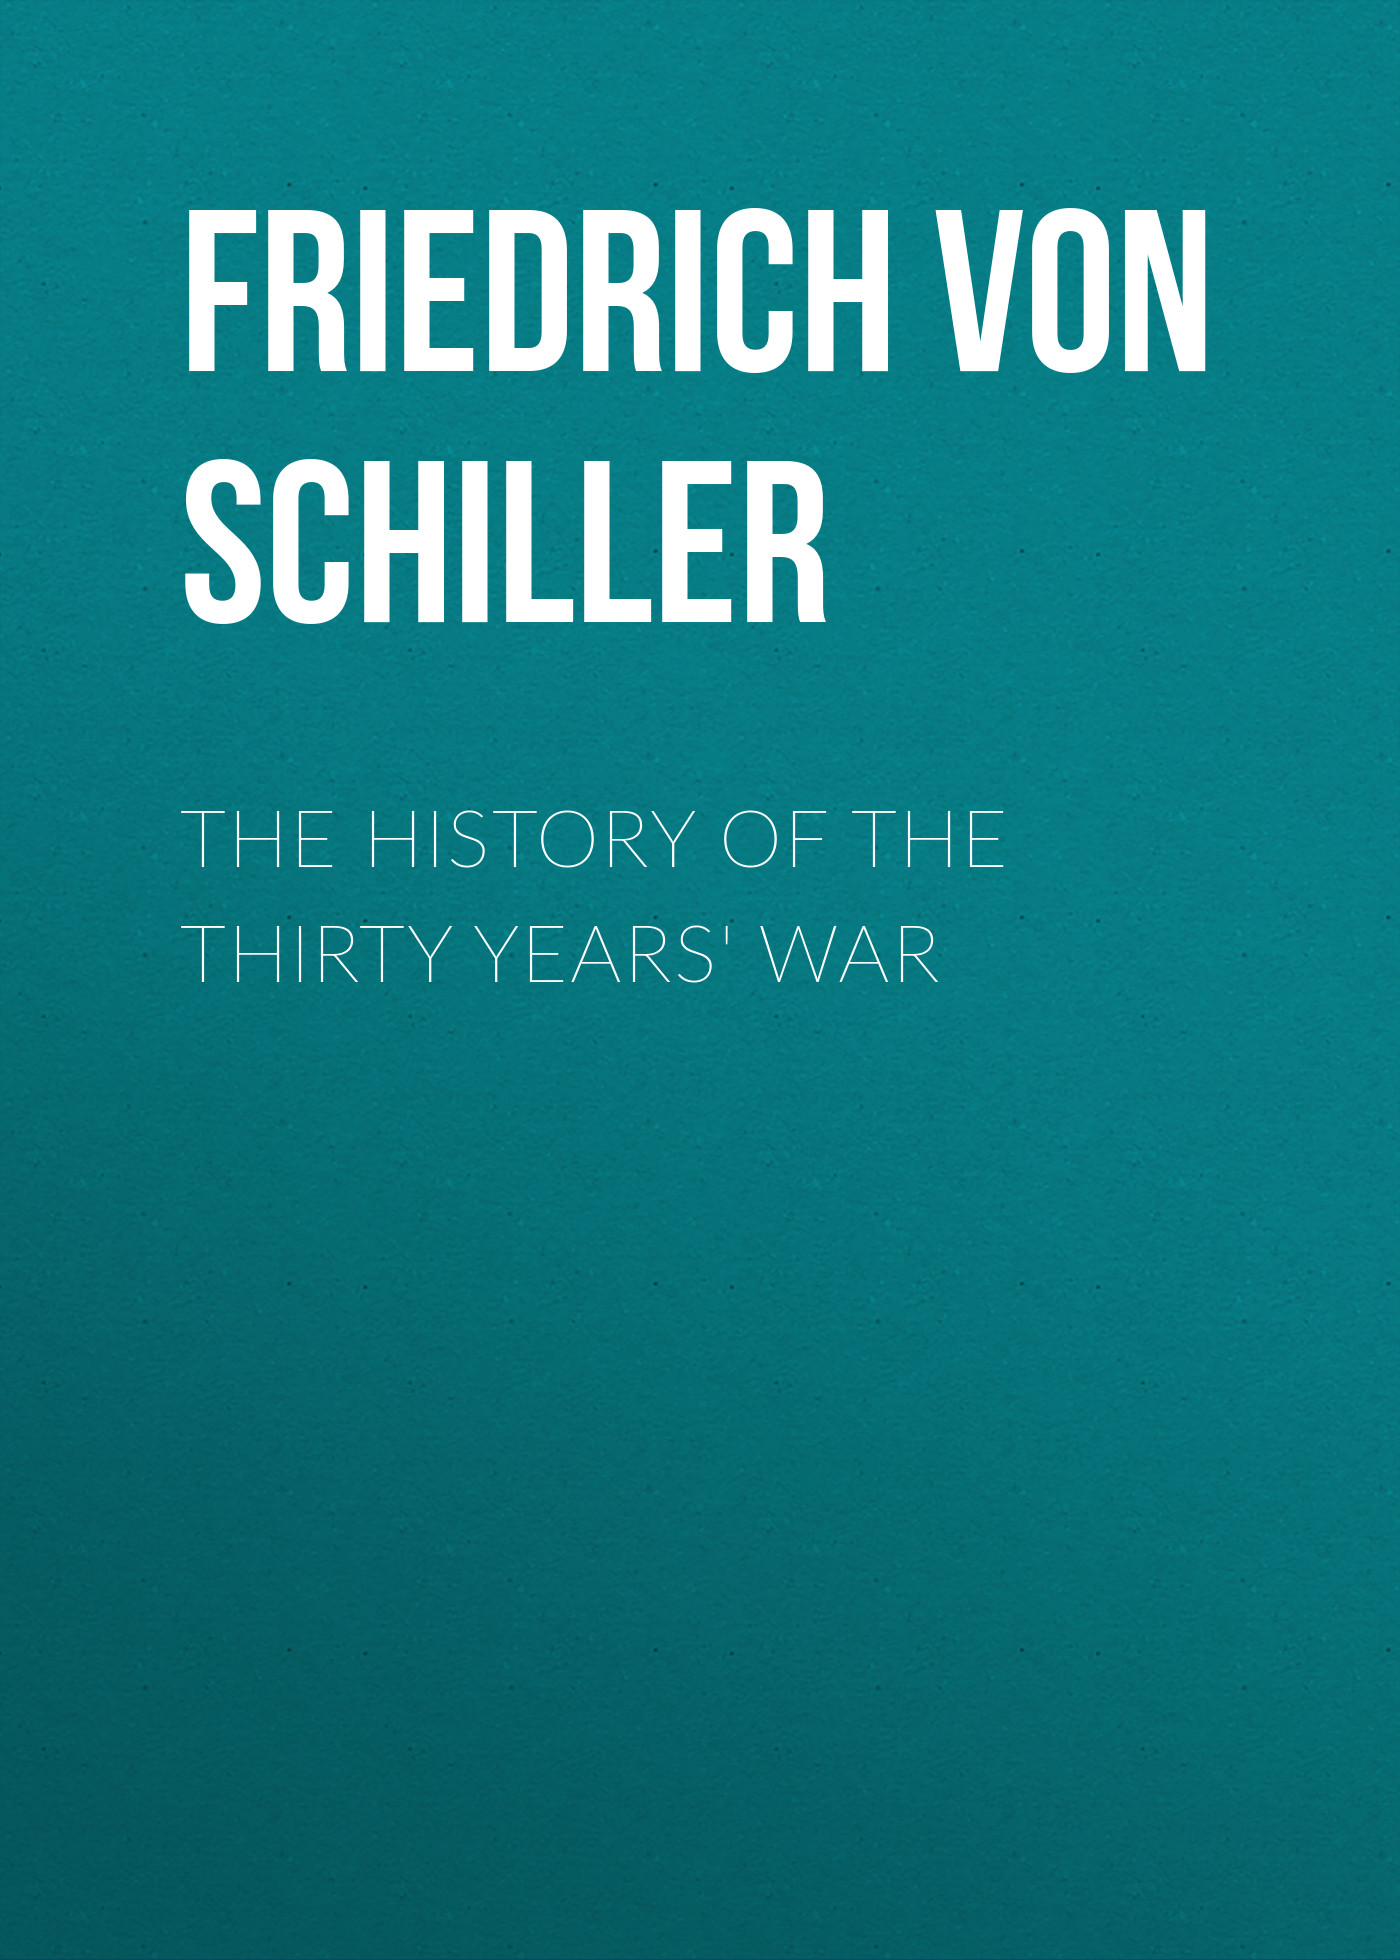 Friedrich von Schiller The History of the Thirty Years' War neil williamson elaine gallagher cameron johnston thirty years of rain